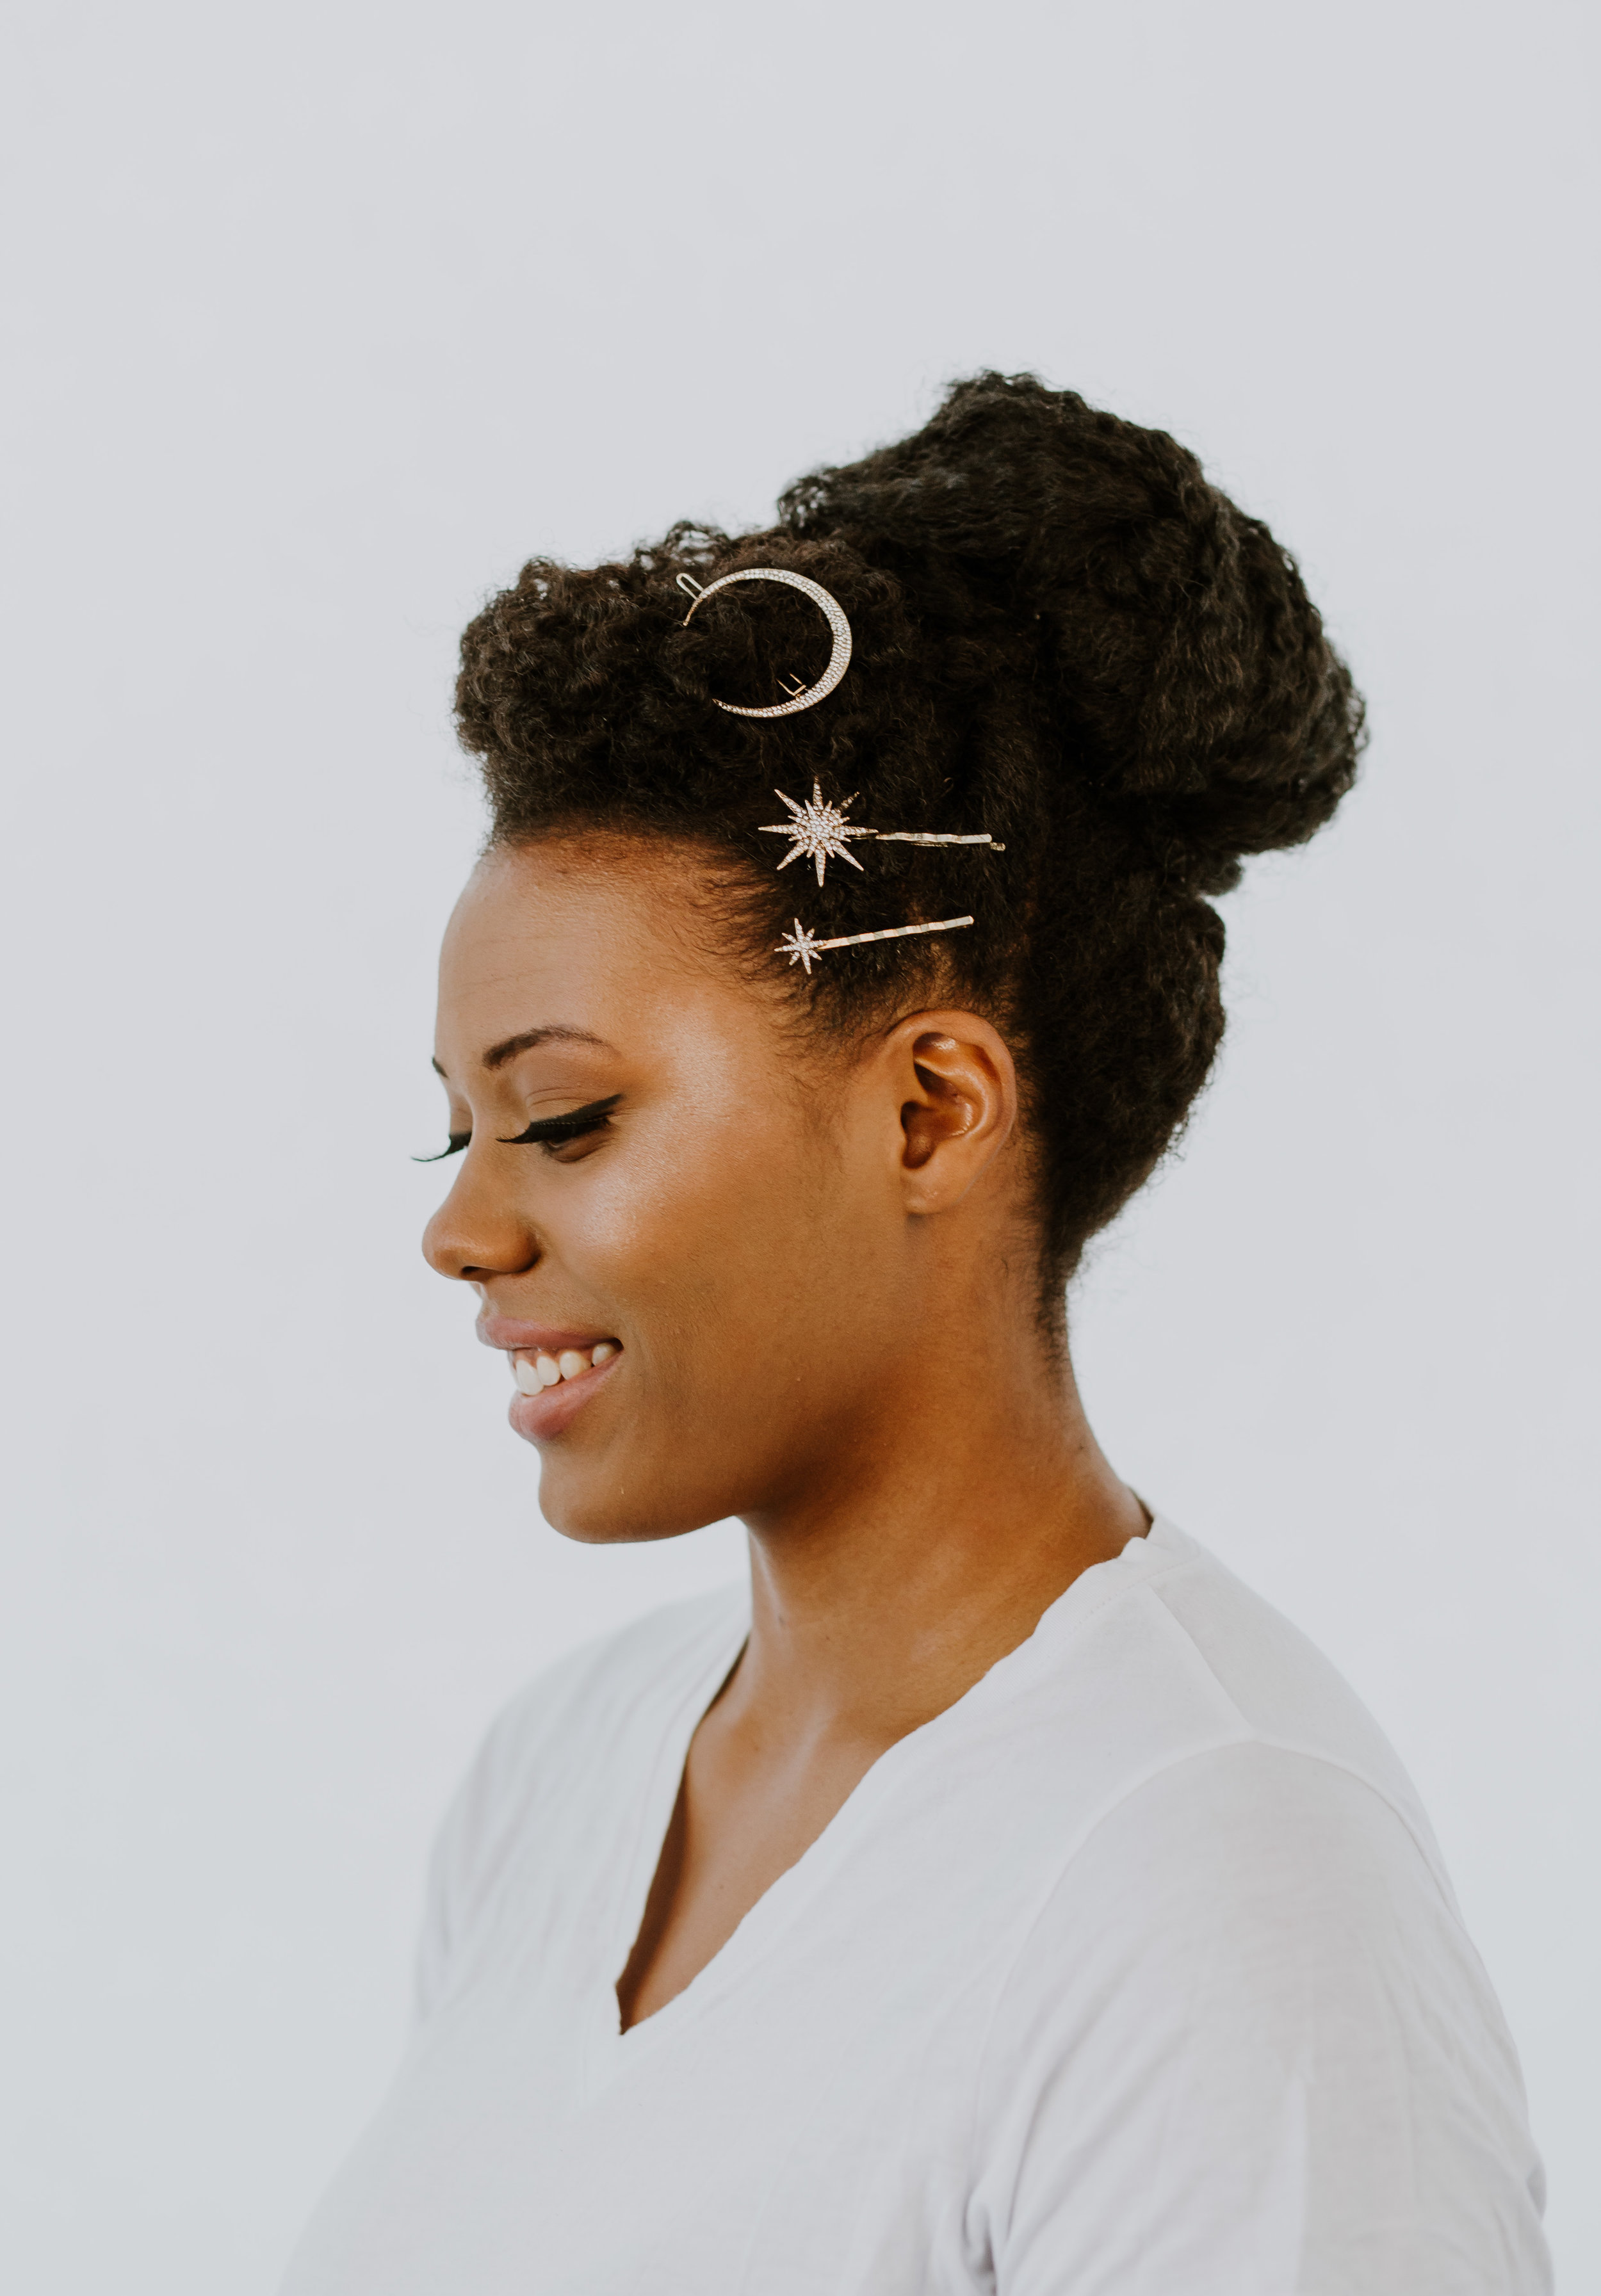 TGC x Amtu Hair Tools - I had the pleasure of being a hair model for their amazing accessories. Check them out at @amtuhairtools on IG for more of my looks!